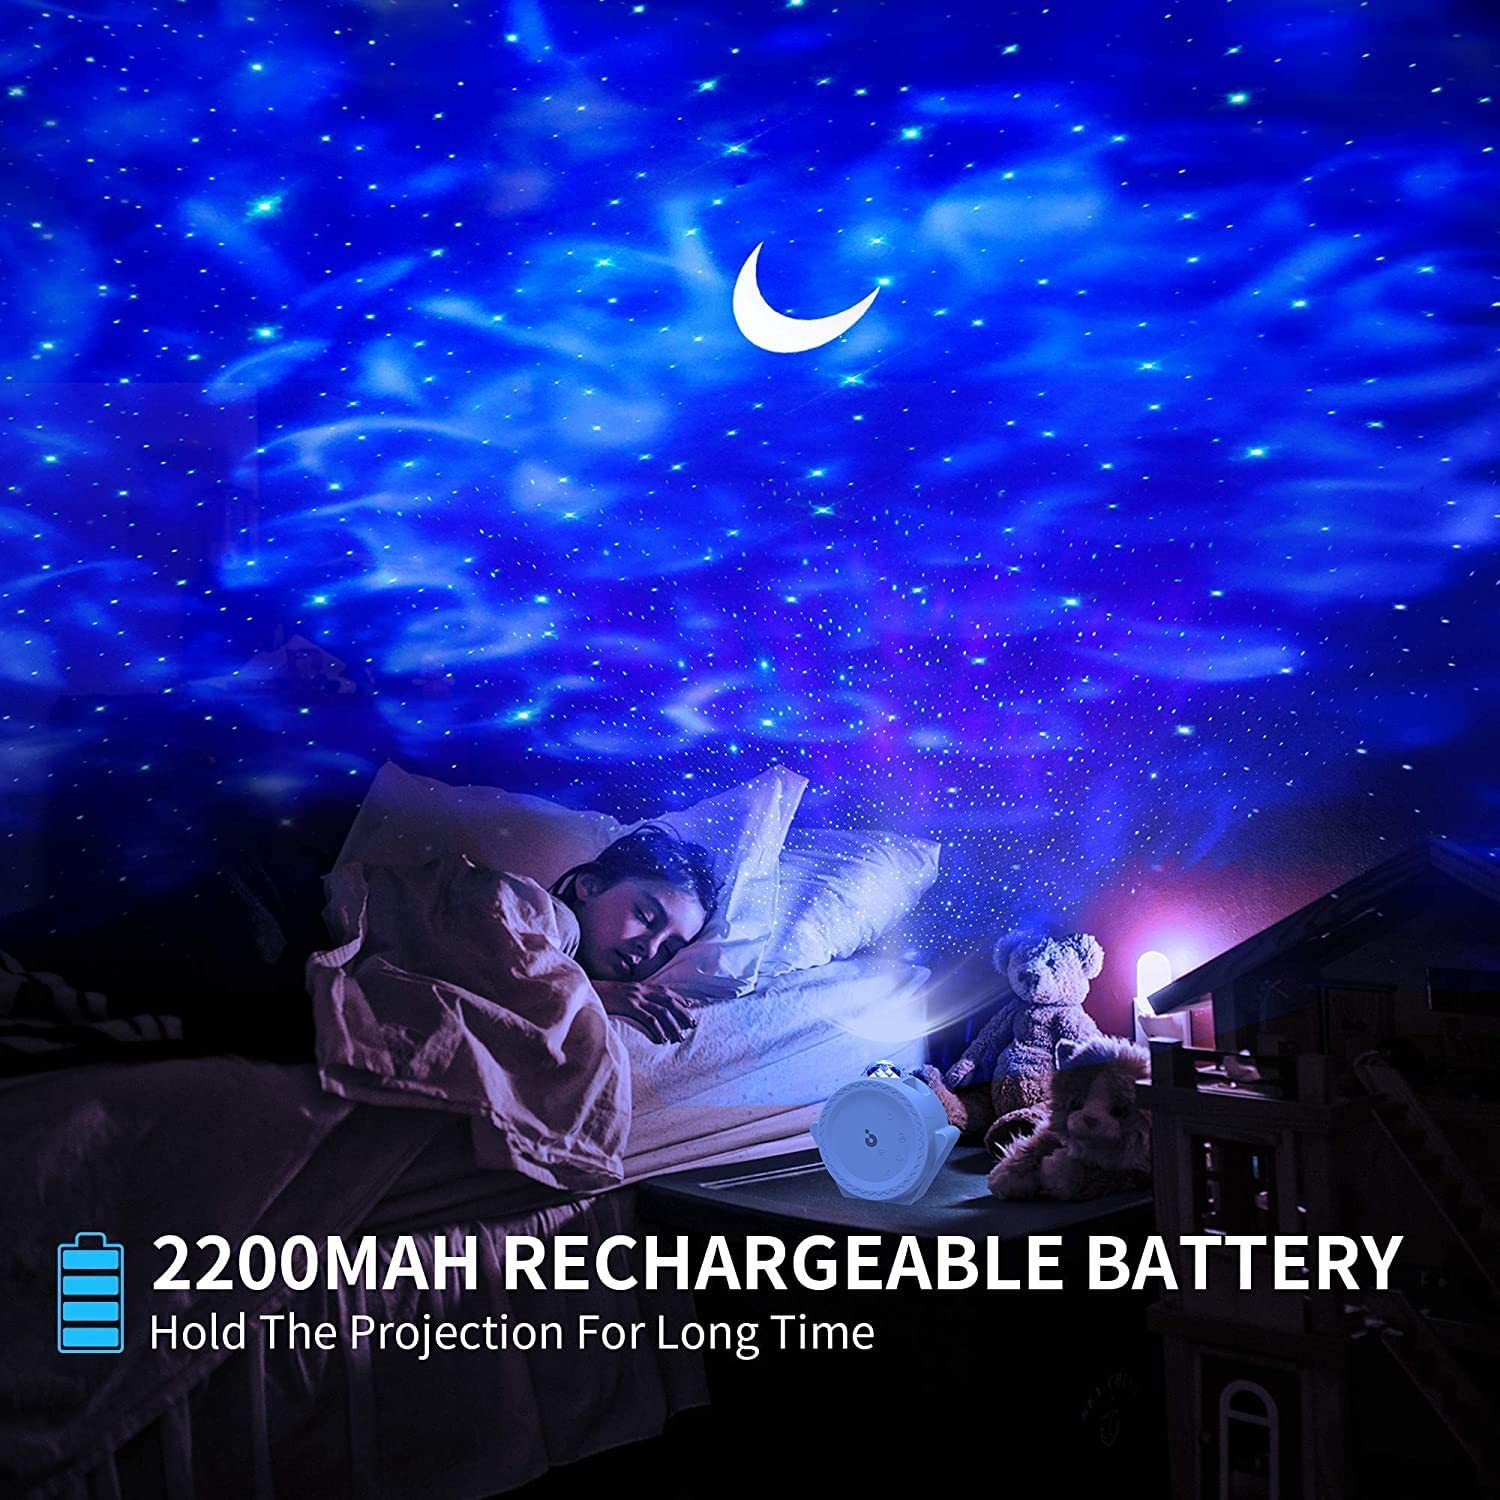 3 in 1 Galaxy Projector Light Decorative Moon Light with Sound Activated /& Touch Control LED Lamp for Bedroom//Game Rooms//Home Theatre//Night Light Ambiance Star Projector Night Light for Kids Black